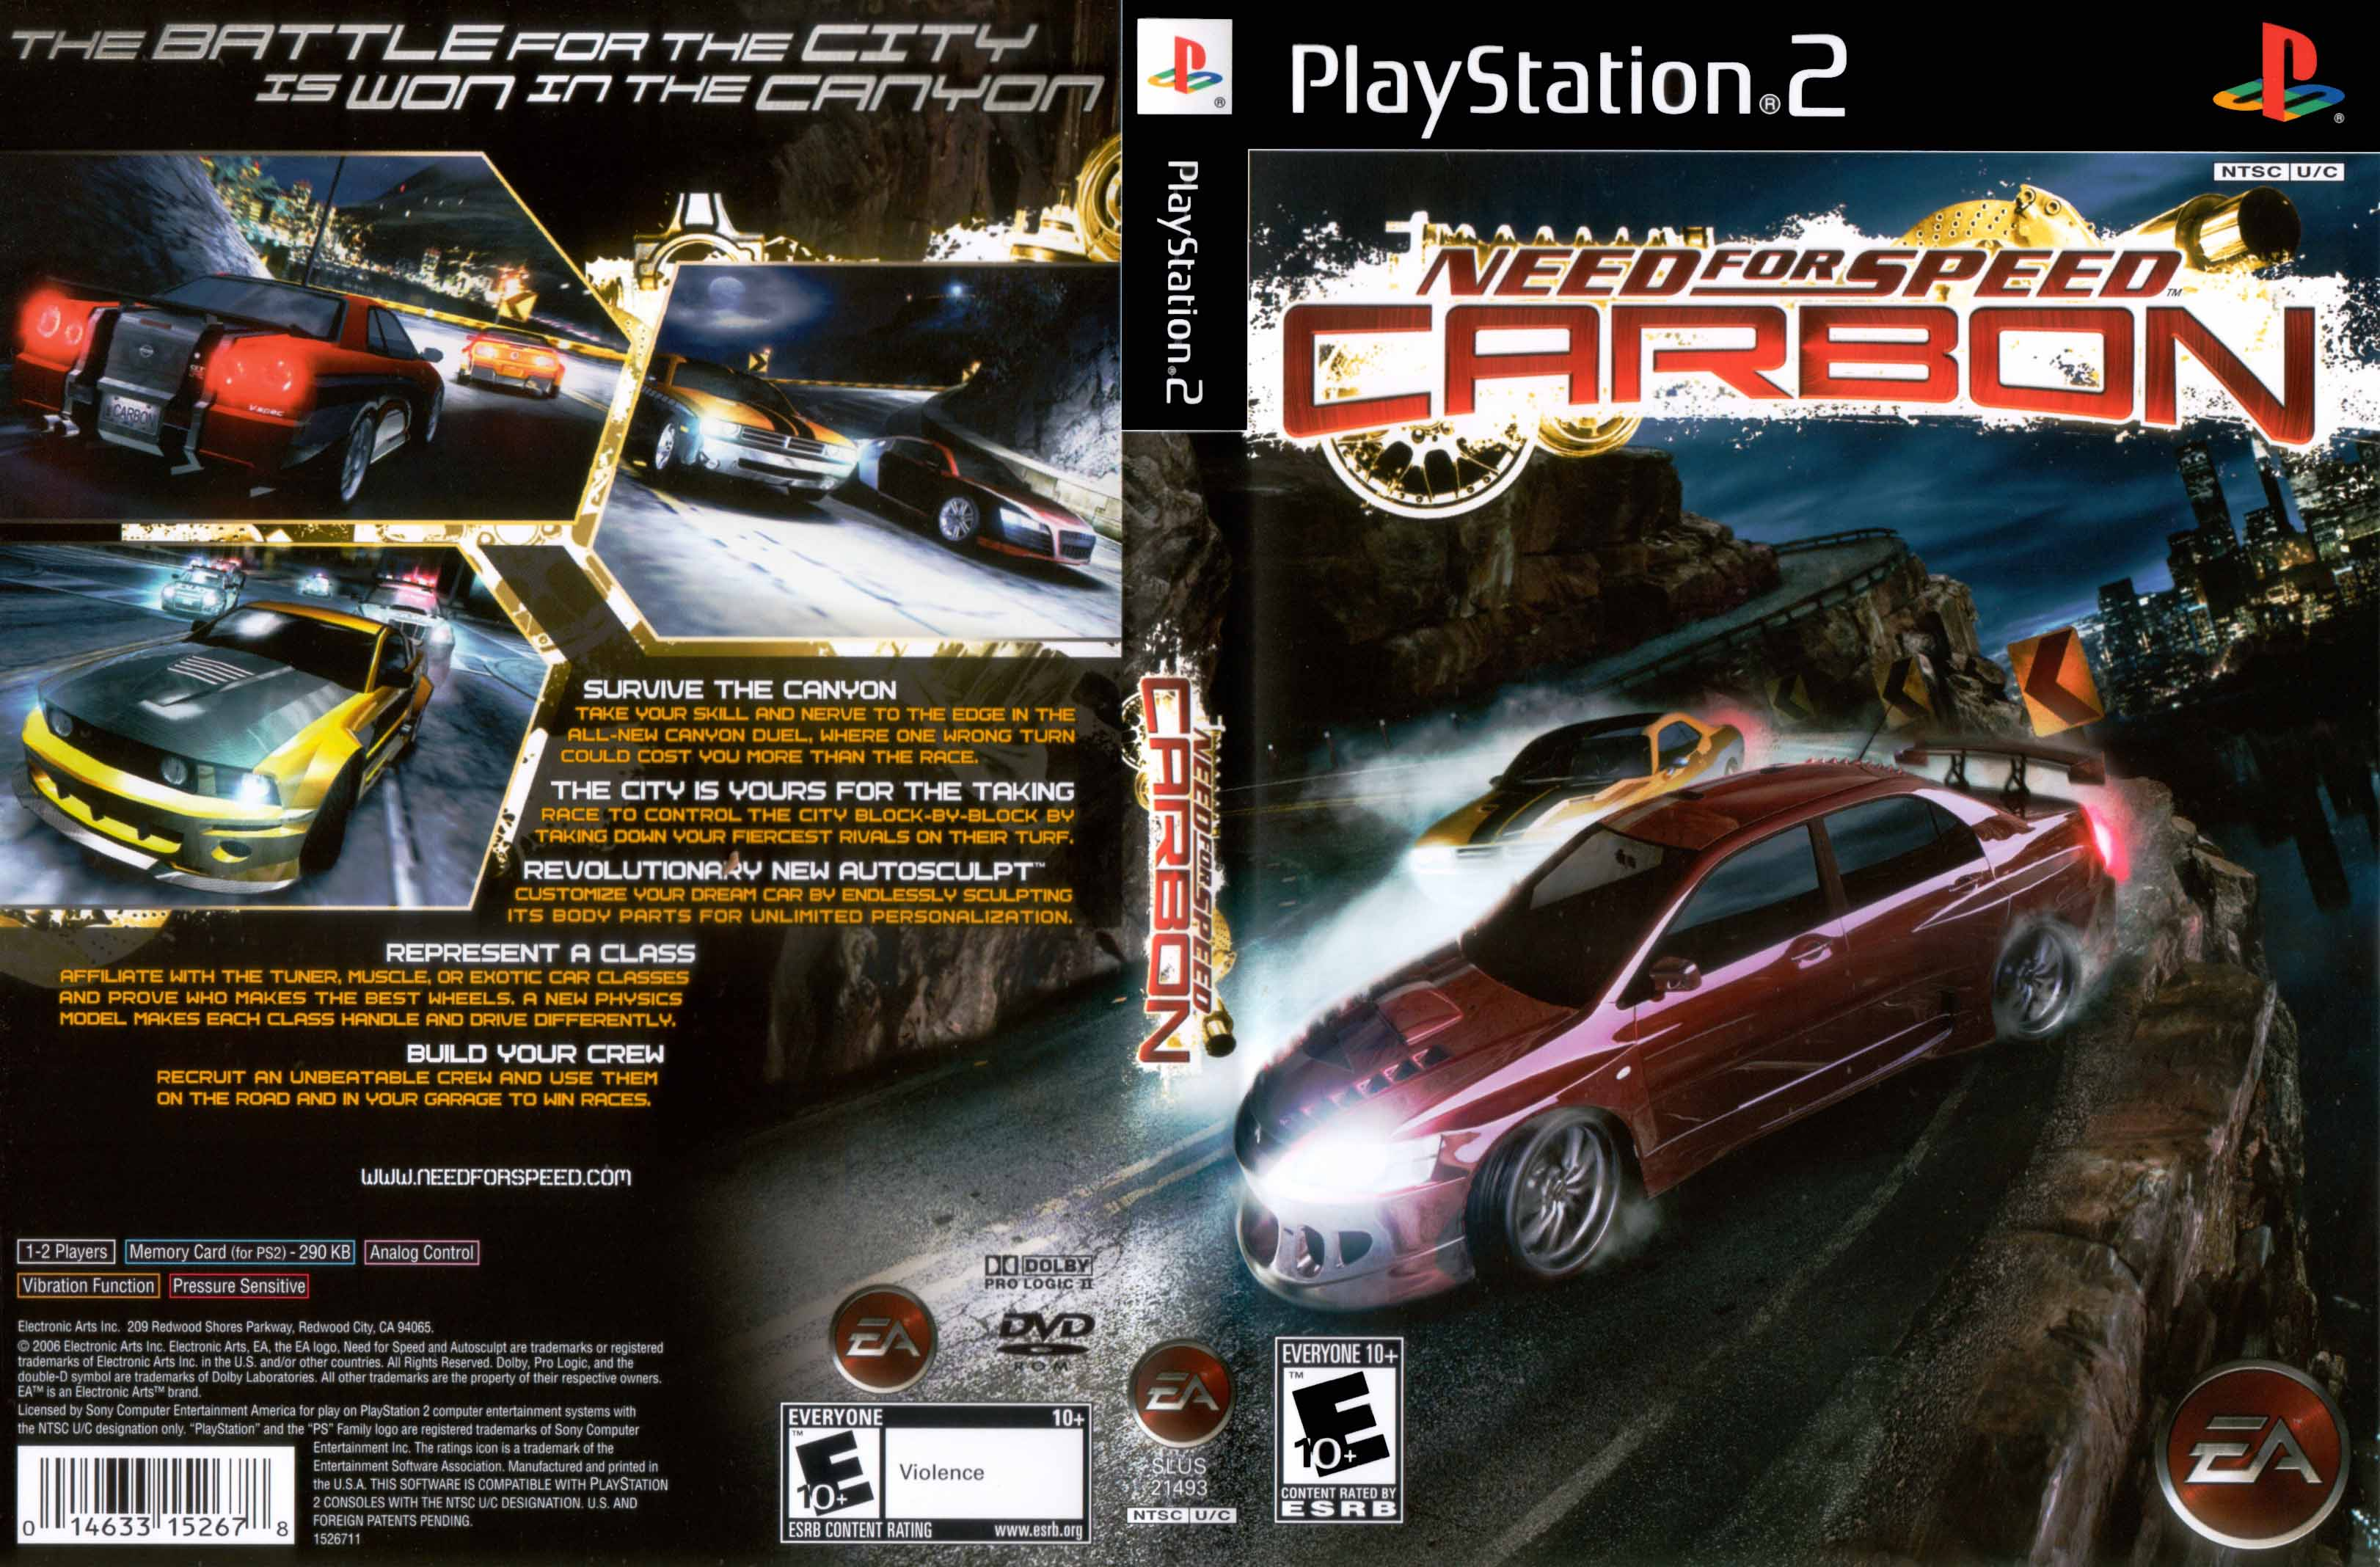 Need for Speed - Carbon (Europe) (En,Nl,Sv,Da,Fi,Pl,Hu,Cs) ISO Ps2 Need For Speed